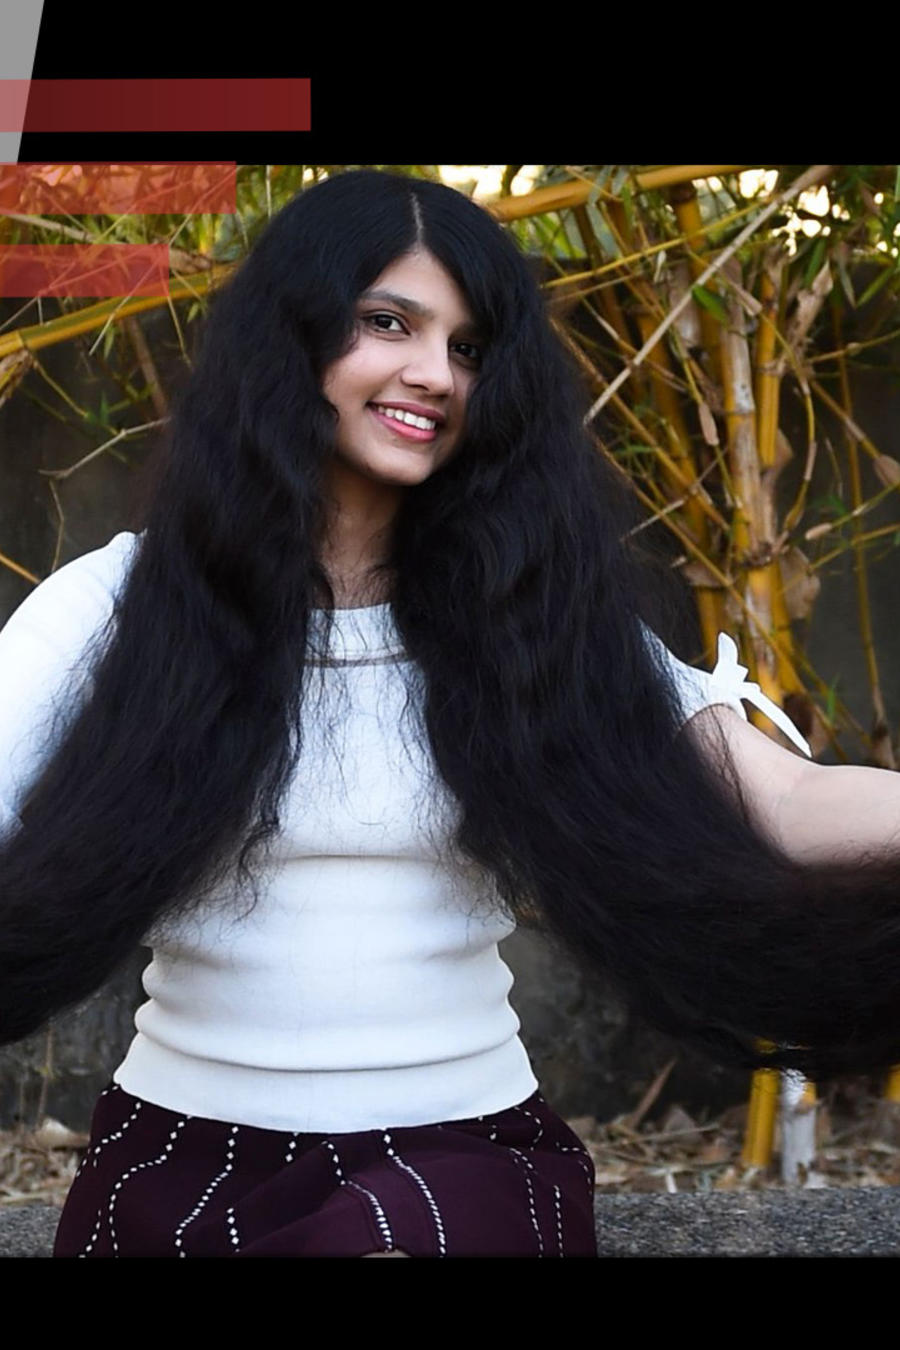 Rapunzel de la India